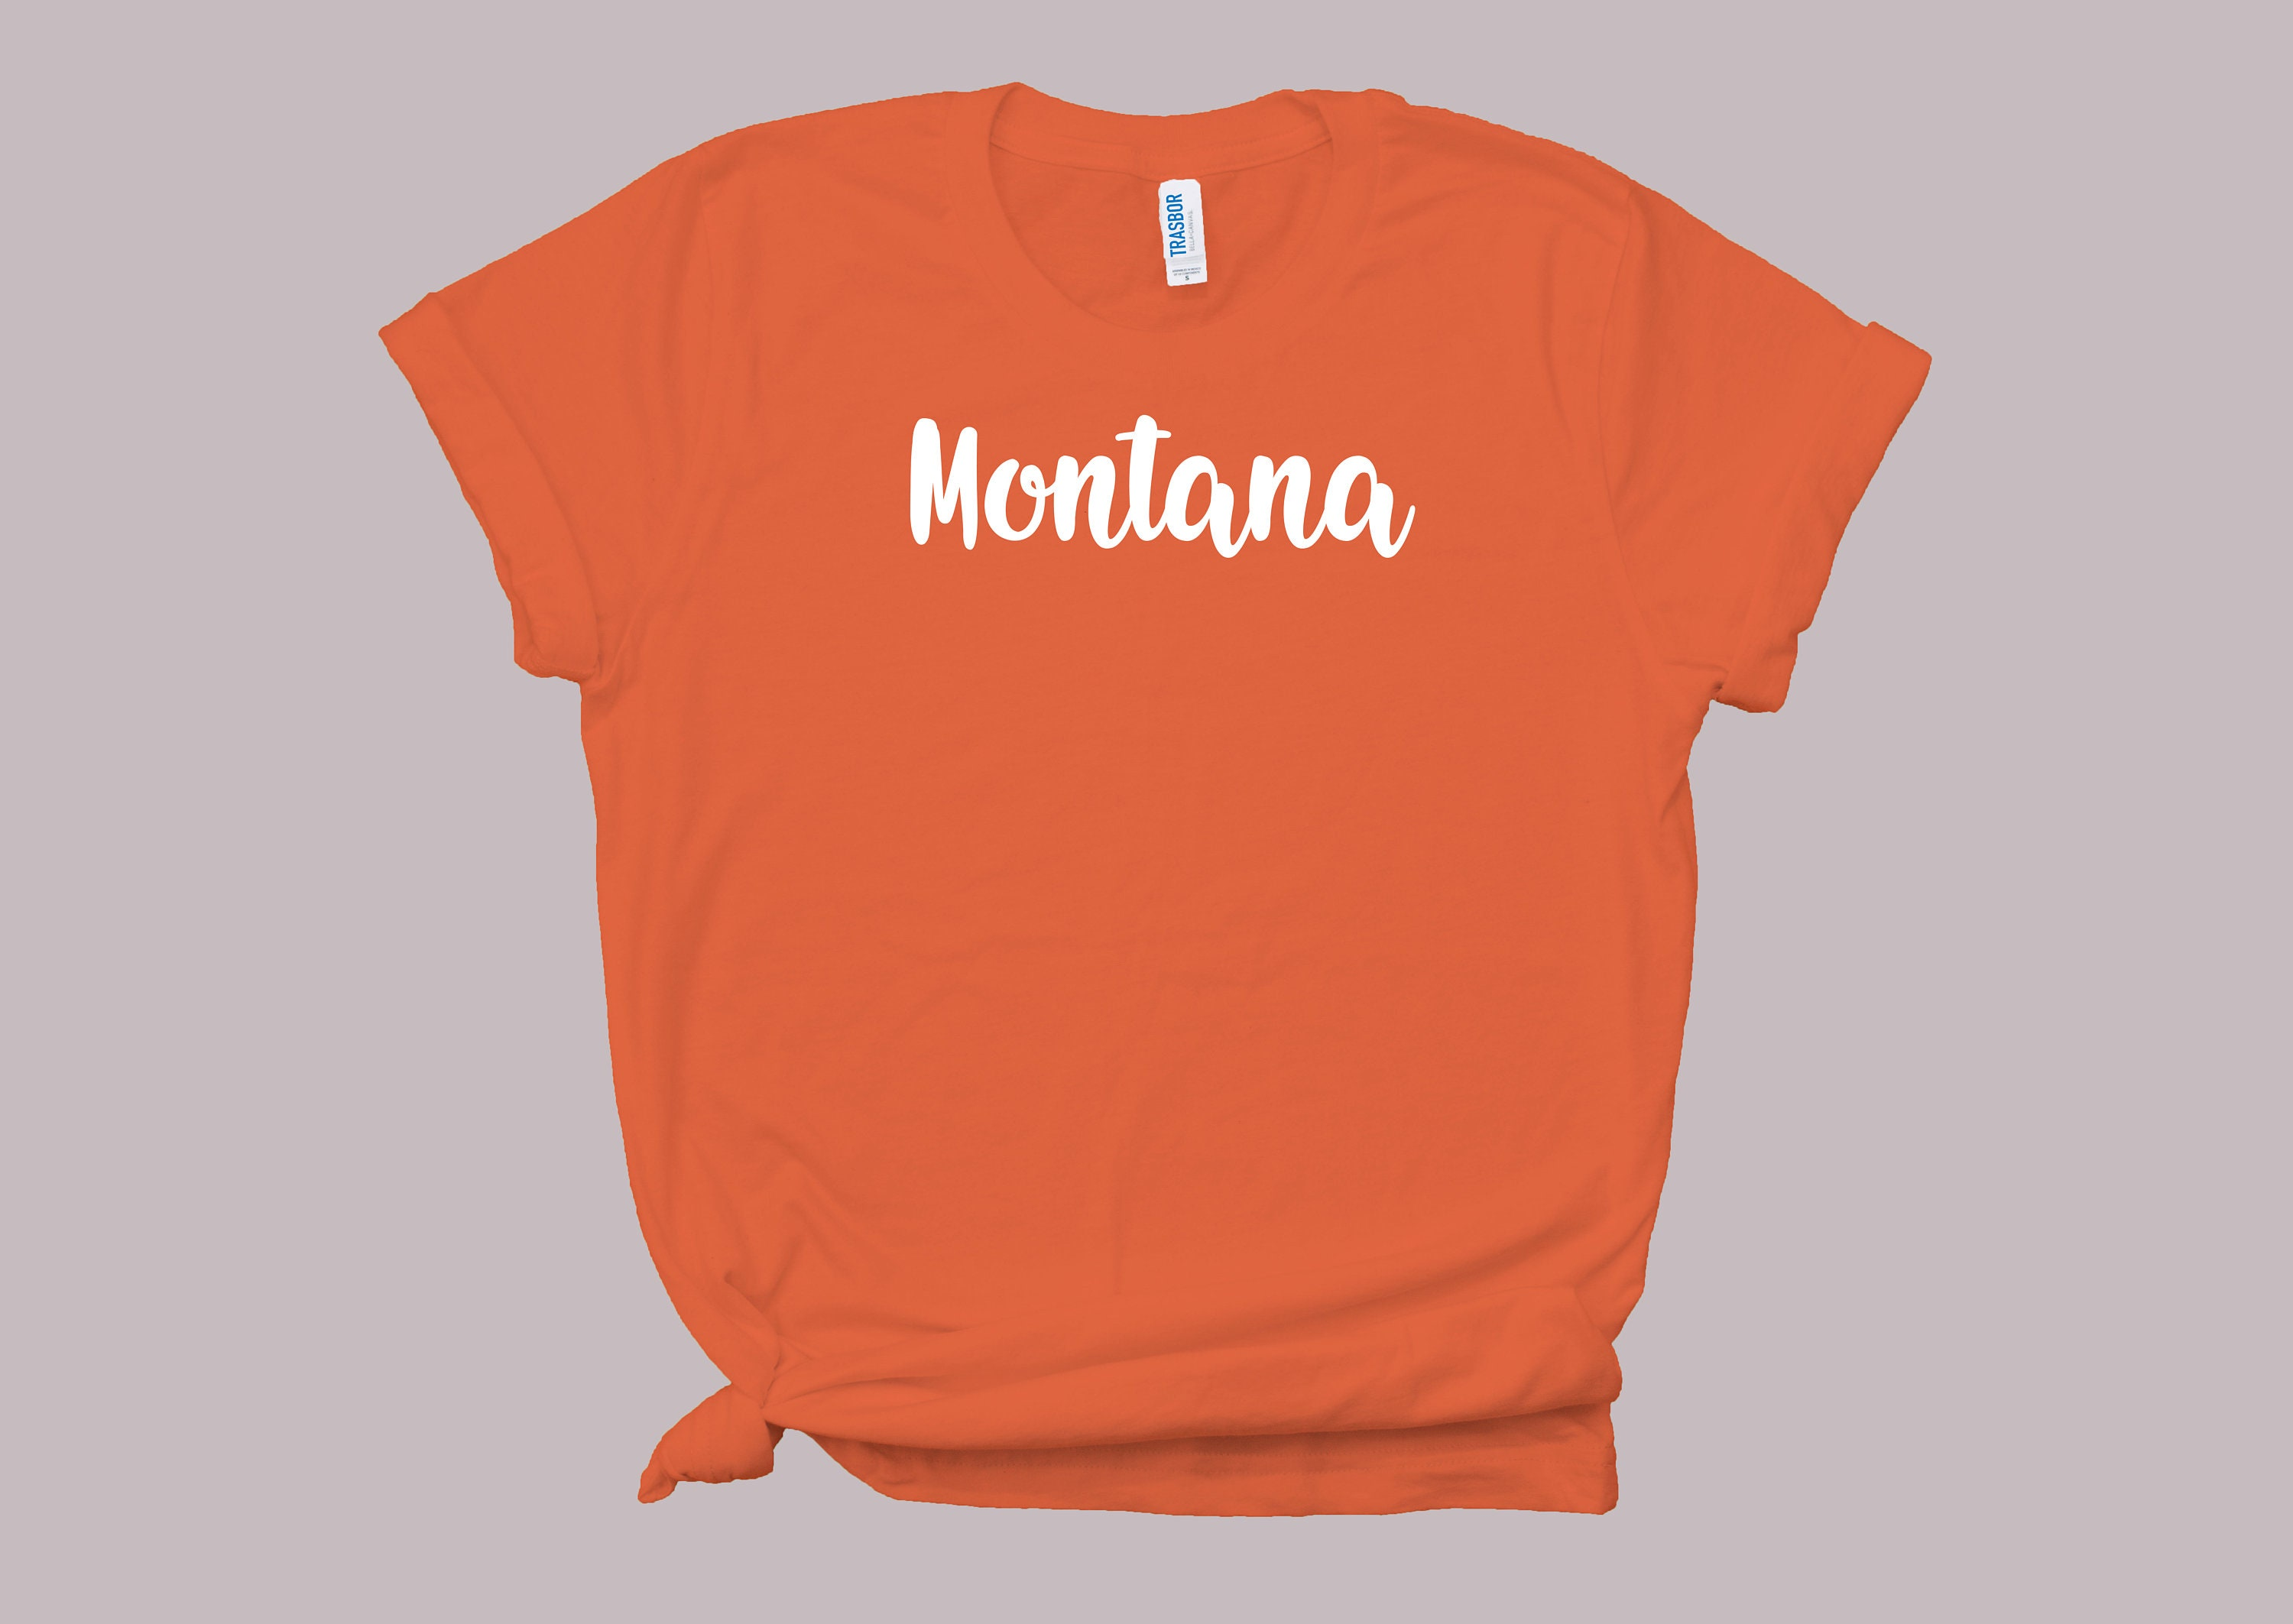 Montana Montana Montana T-shirts | T-shirts avec des citations | T-shirts avec paroles | T-shirts tendances | T-shirts drôles | Fun dictons | Tees USA | Américain T-shirts 1a520a